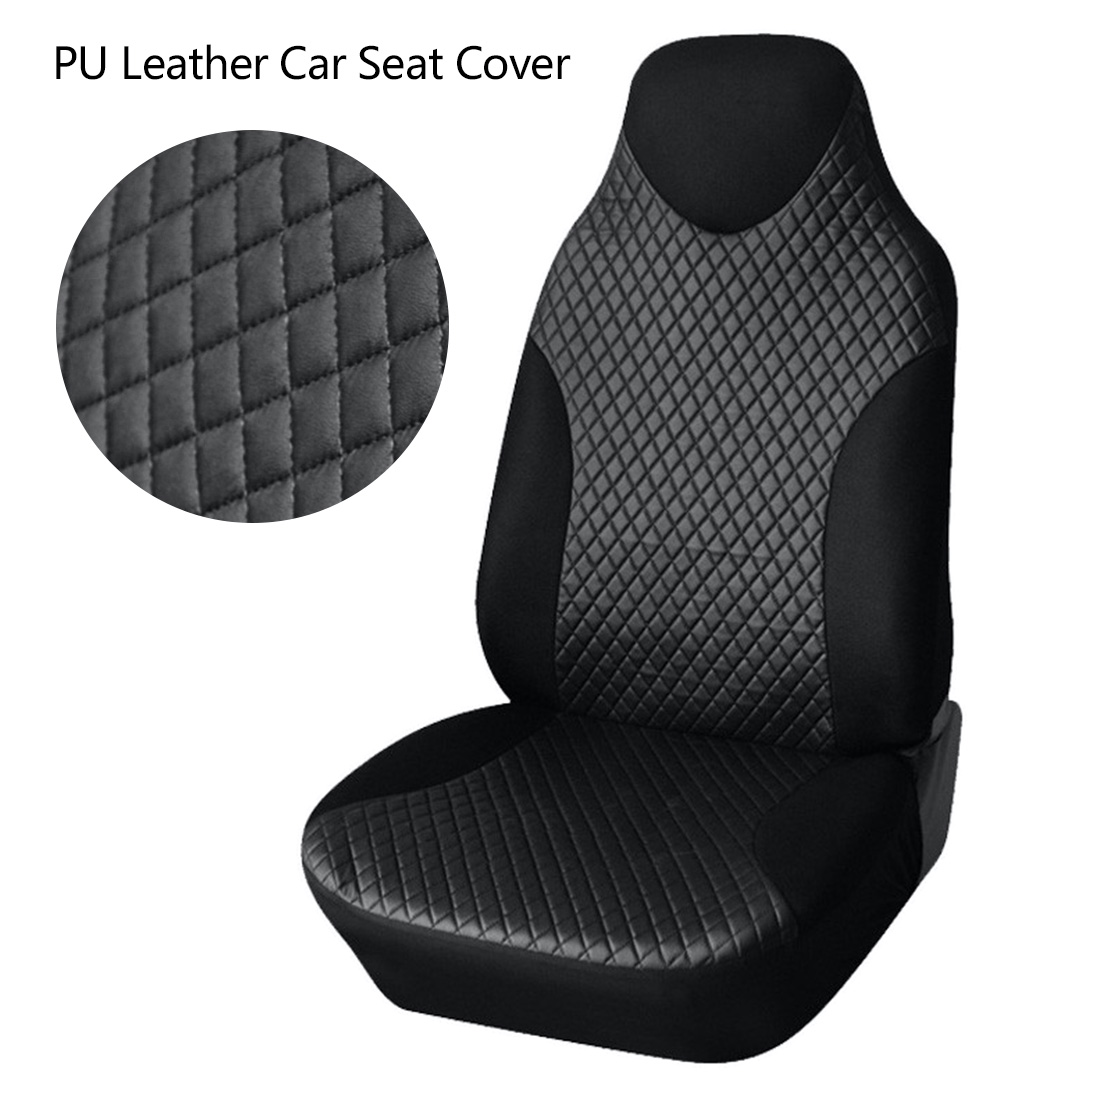 Dewtreetali Front Car Seat Cover PU Leather Universal Protector For Auto Covers Interior Accessories Styling